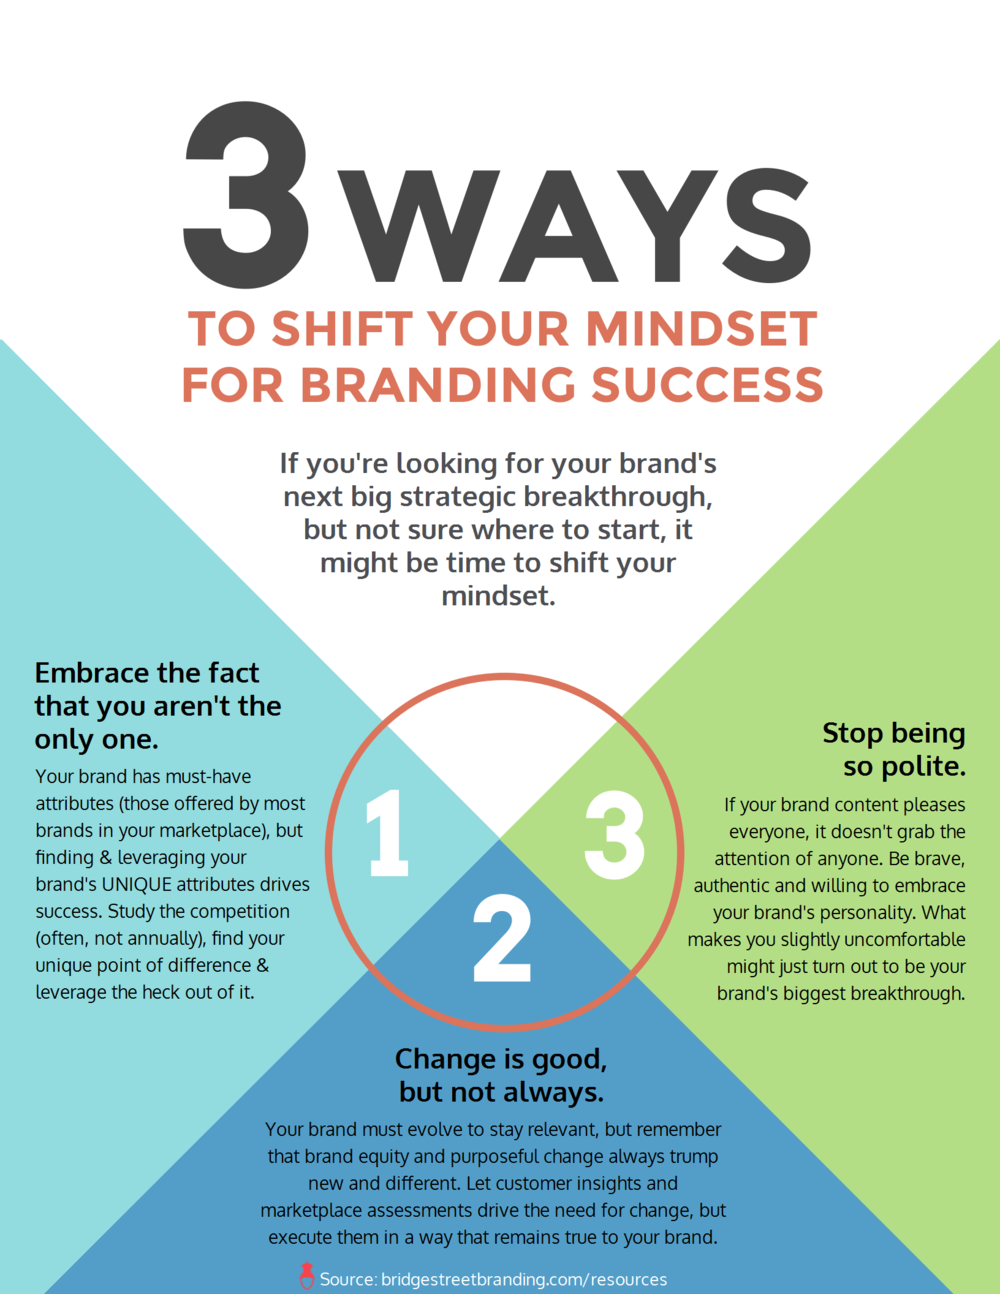 bridge_street_branding_infographic_3ways_shift_mindset_branding_success